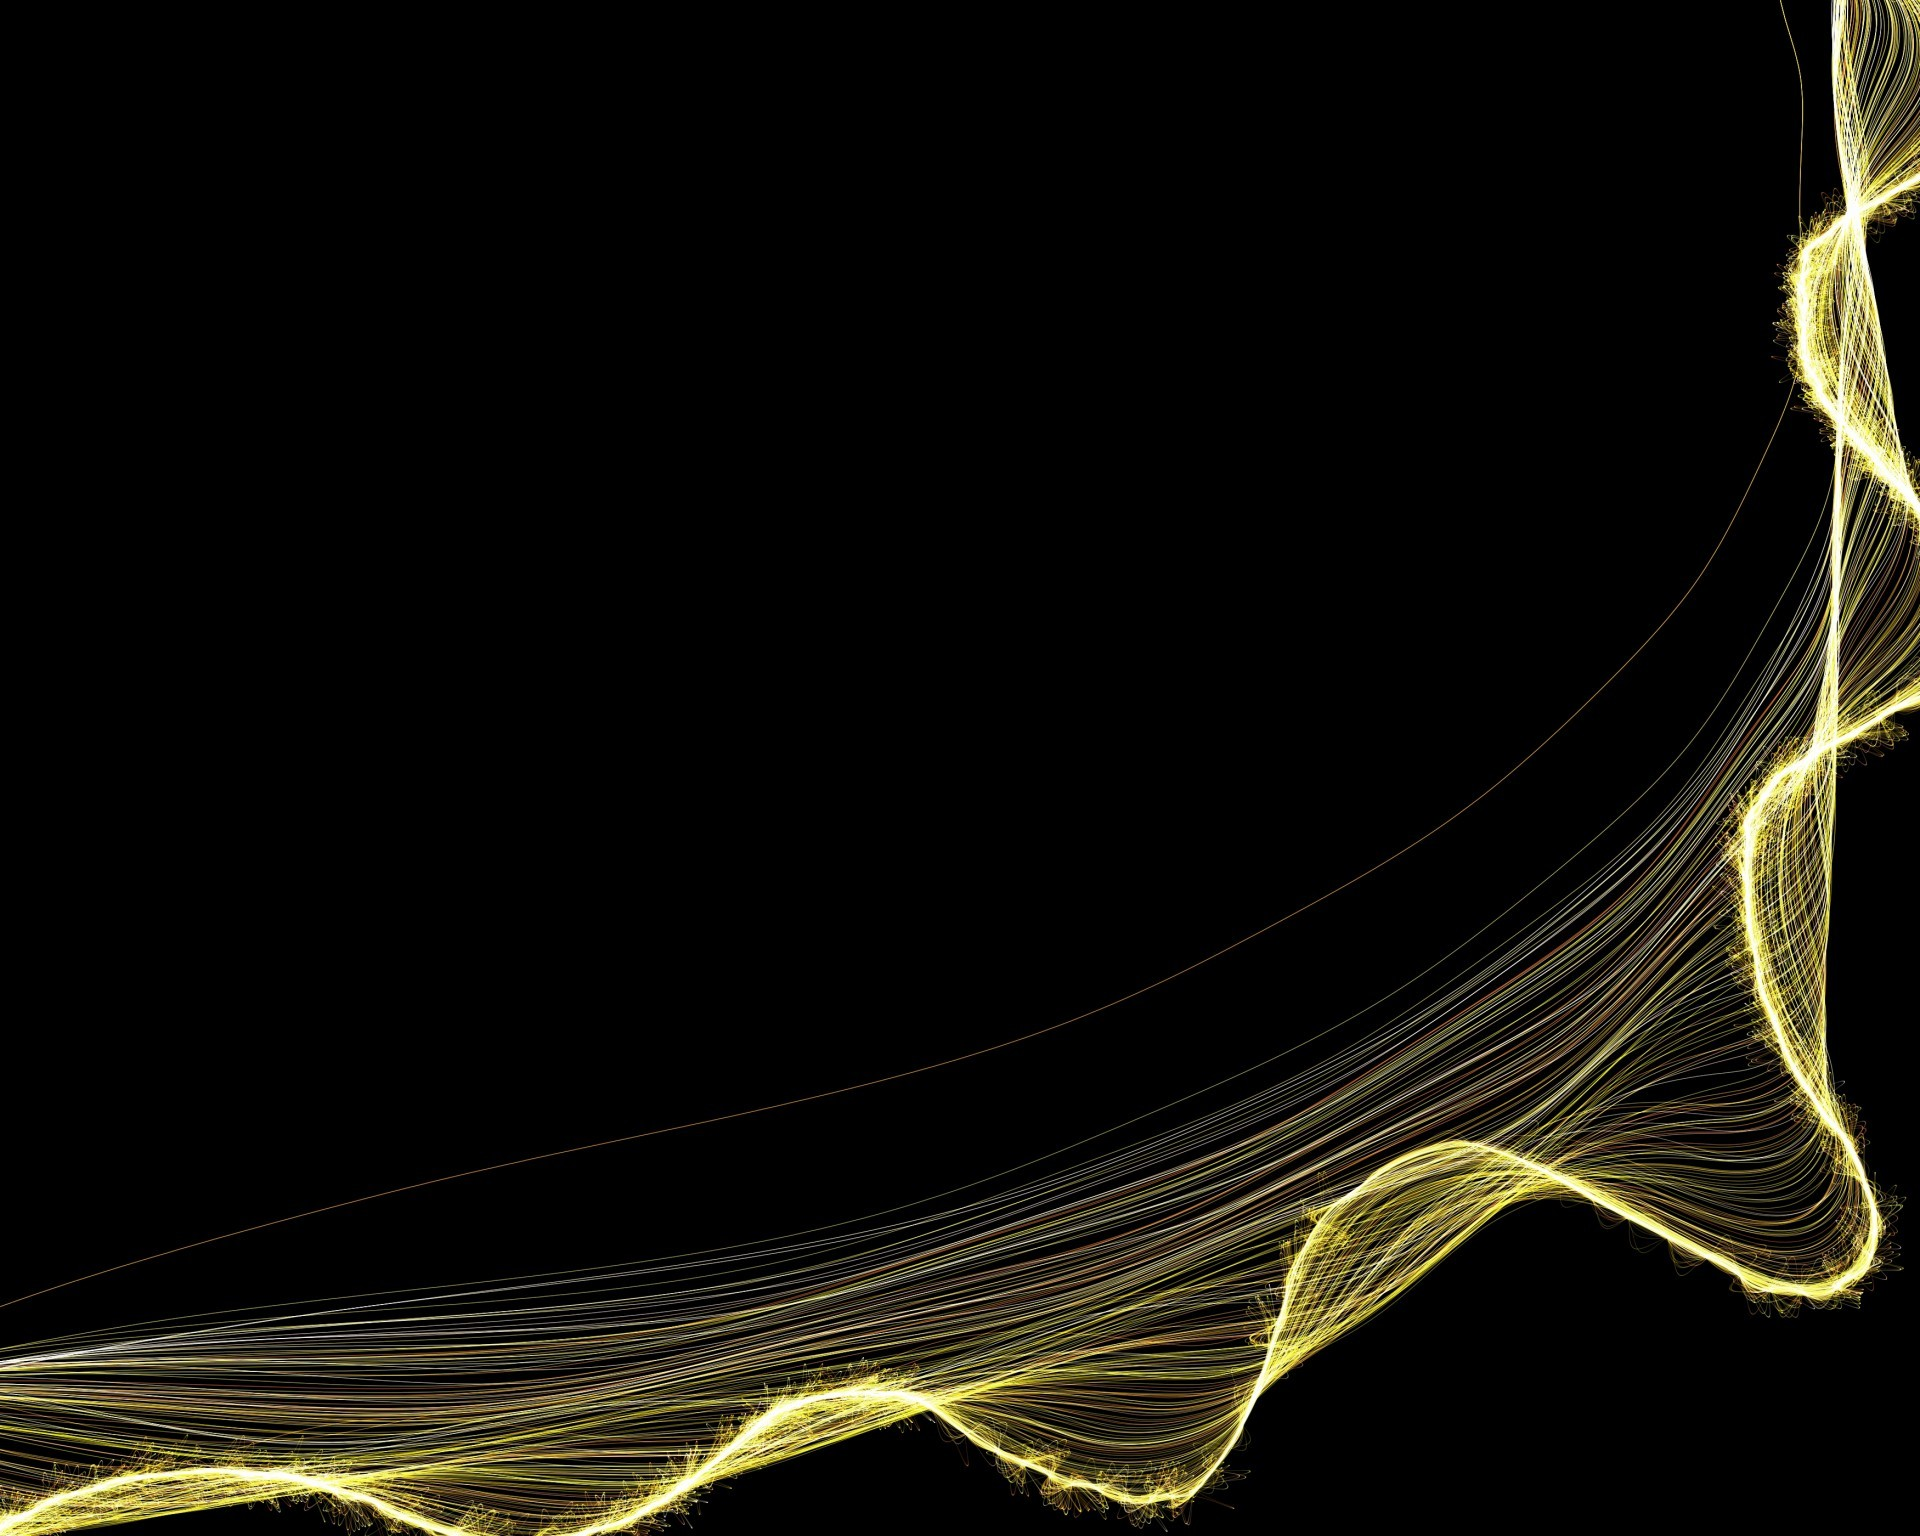 black and gold hot powerpoint background #5112